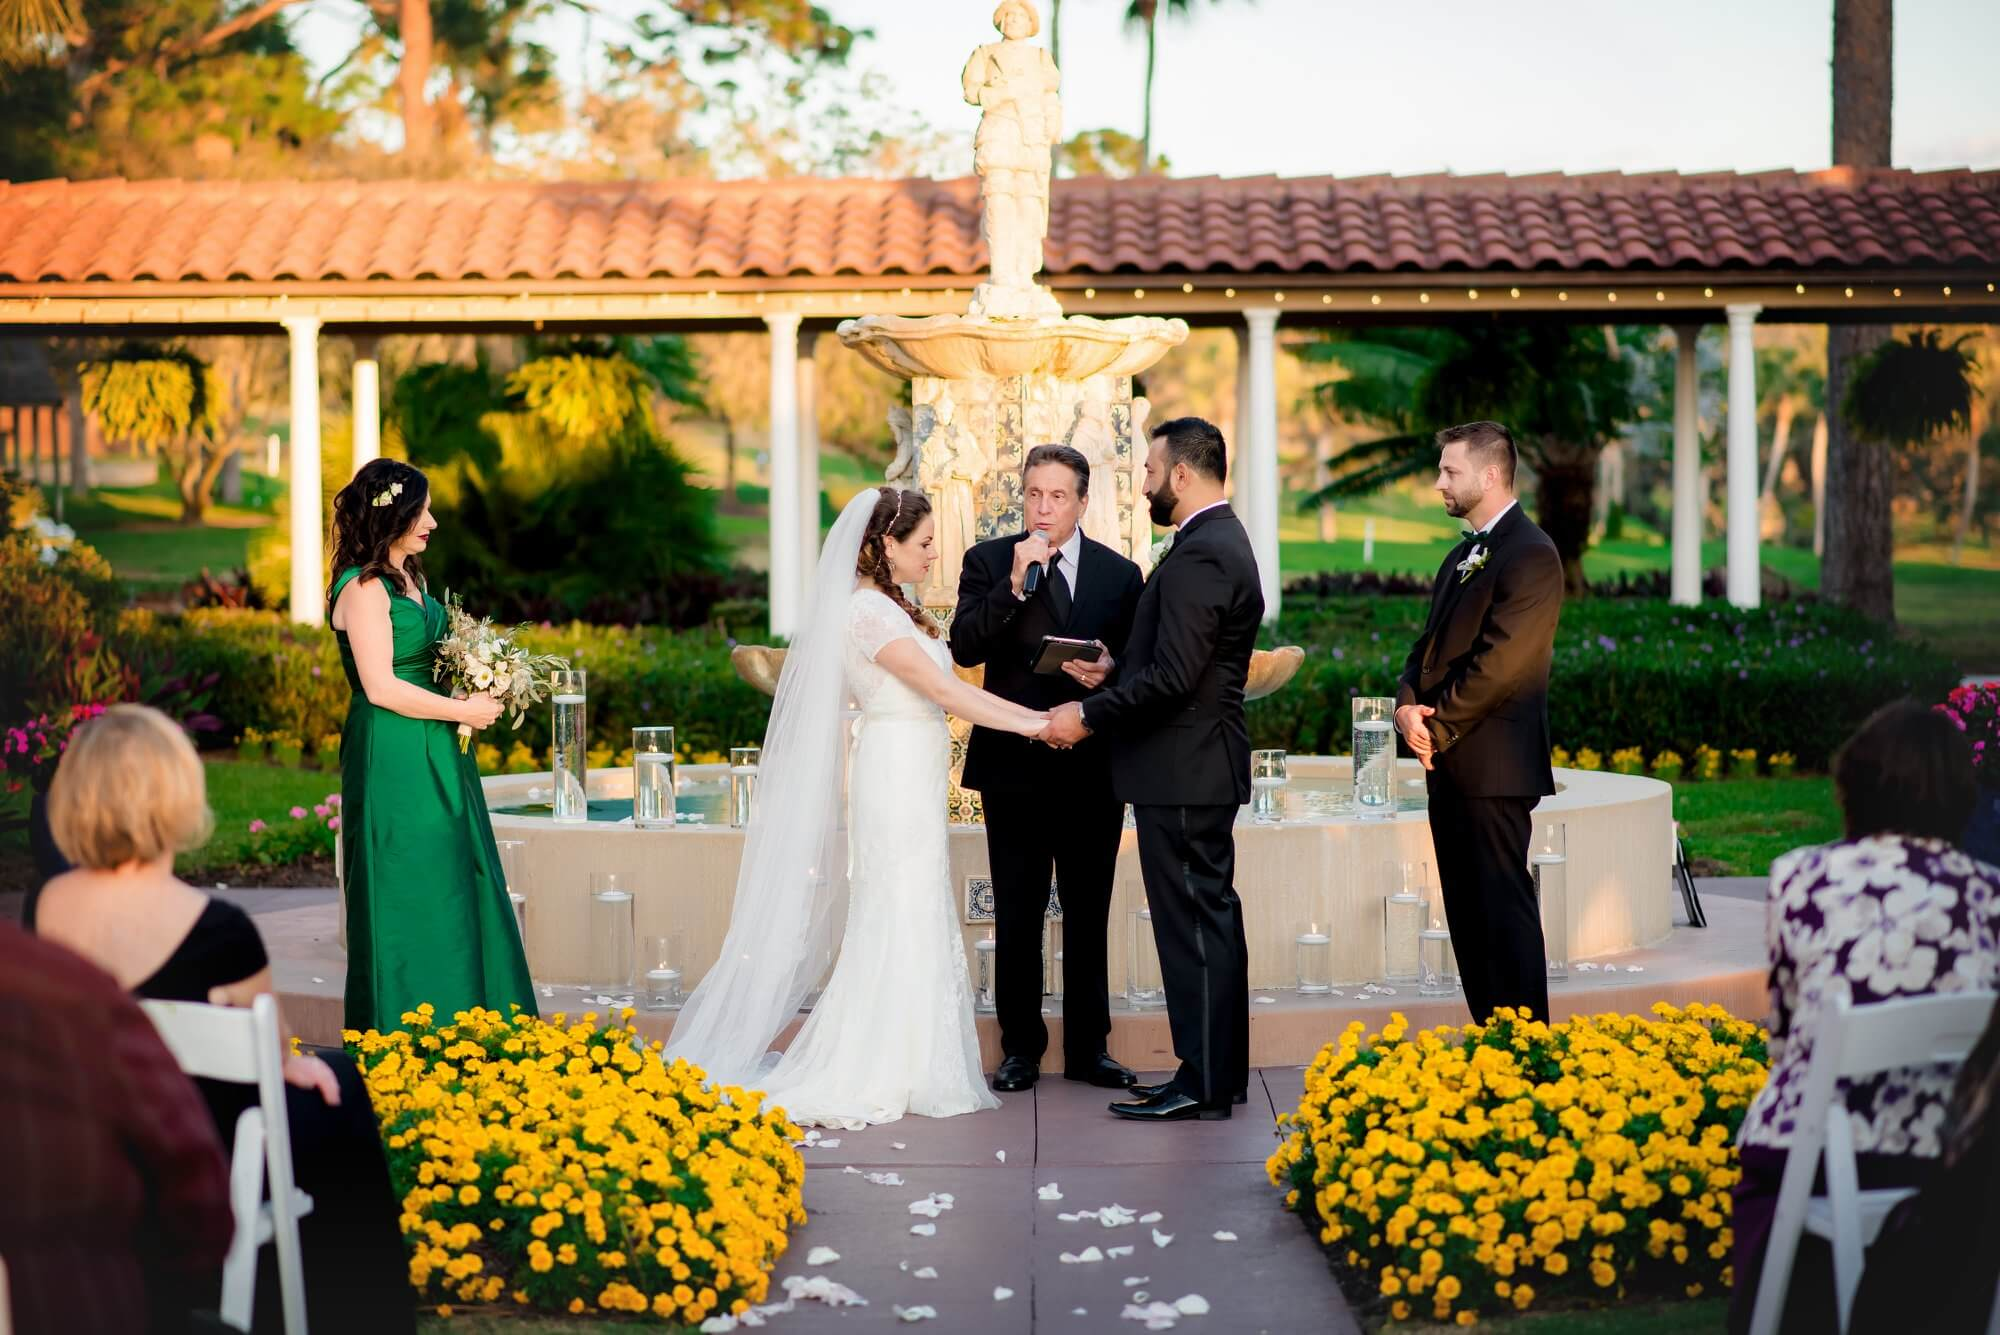 Wedding Ceremony with Fountain Backdrop framed by yellow flowers